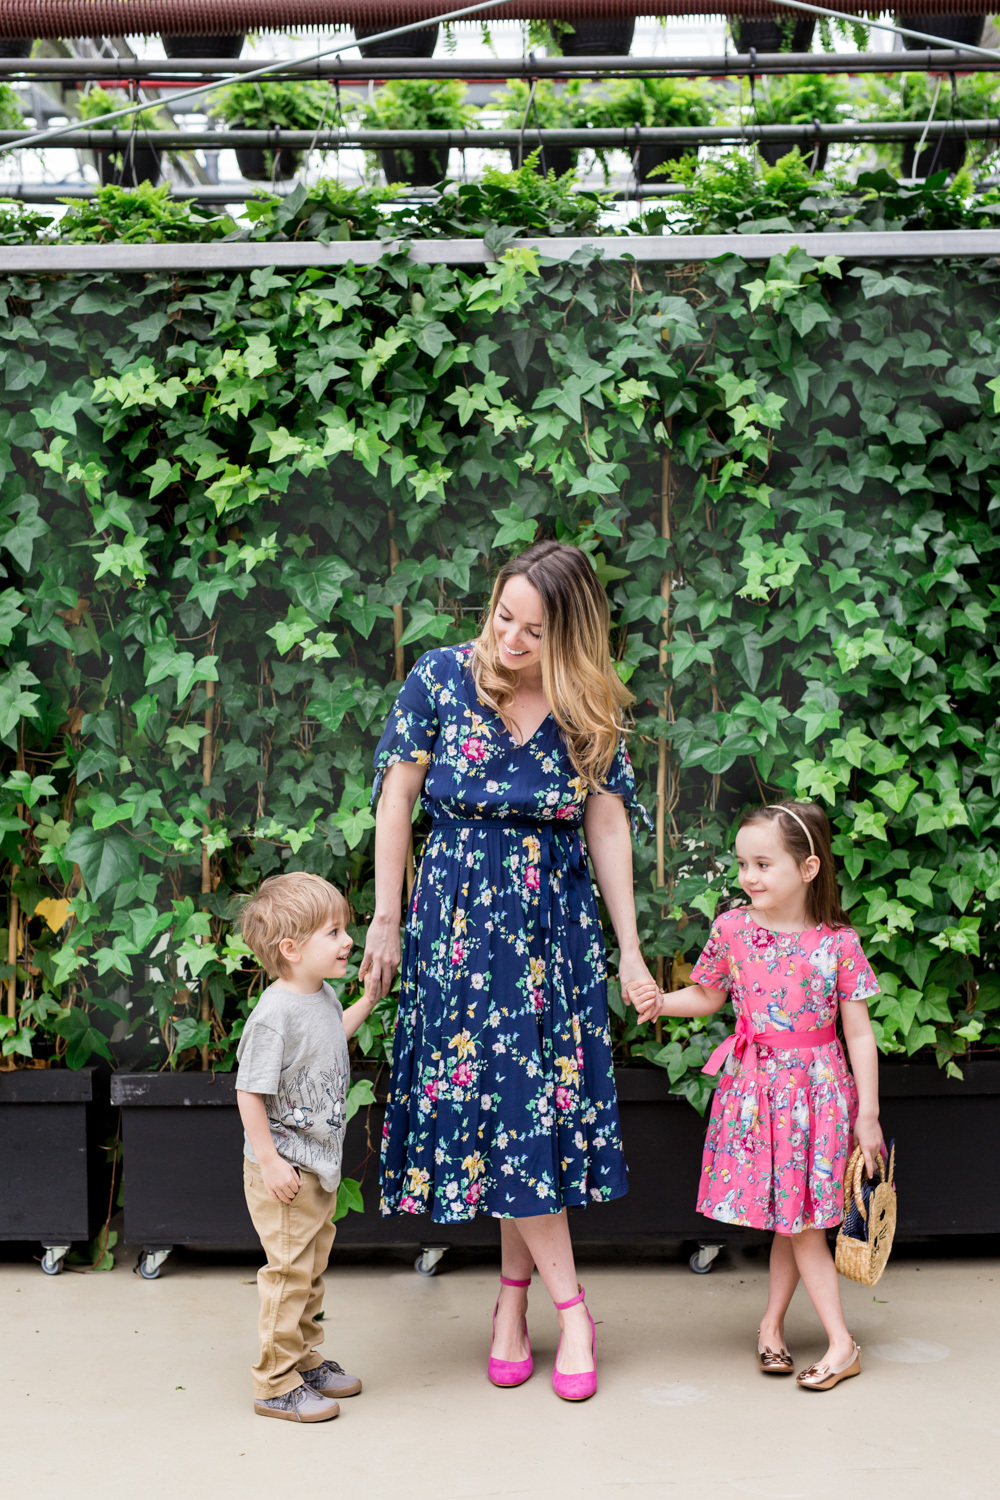 a0dd01f1bd Spring Style with Gap x Sarah Jessica Parker Family For Her For Kids  Greenthumb Hauls Home